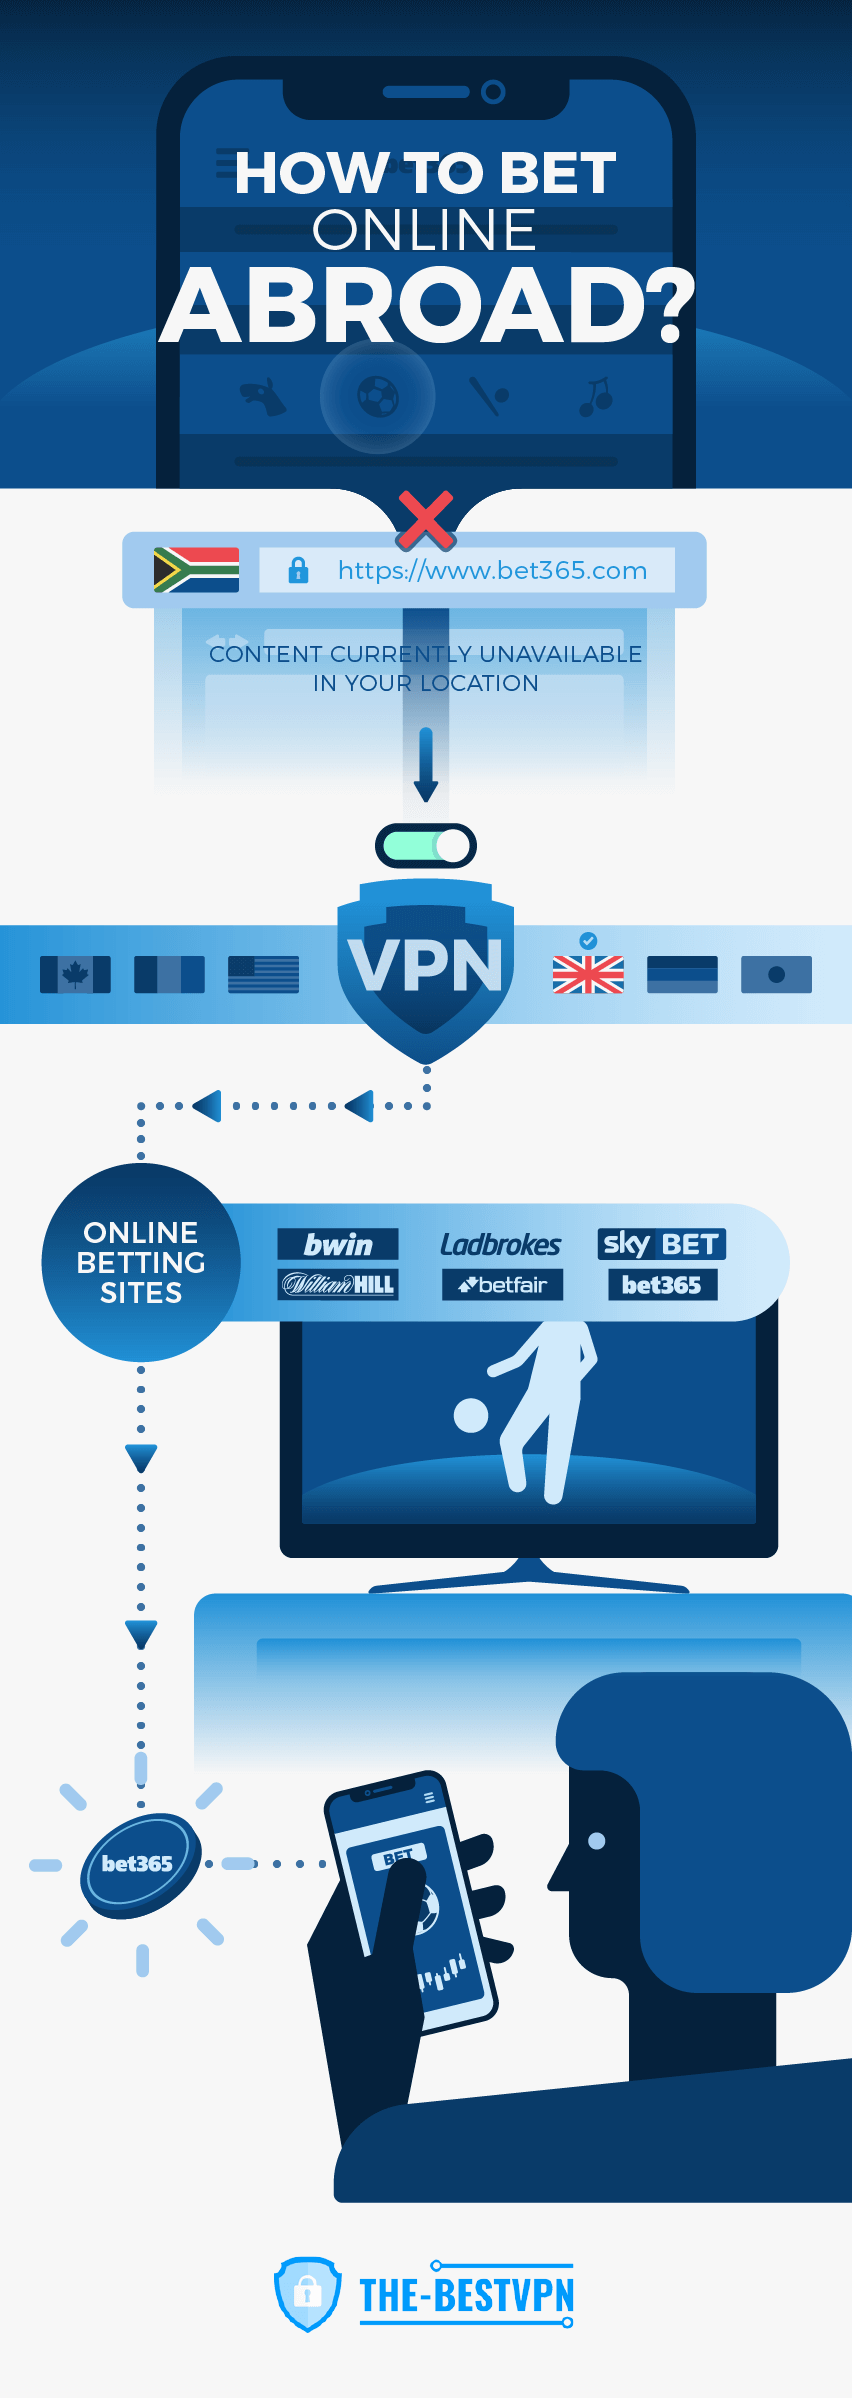 How to bet online abroad - VPN infographic